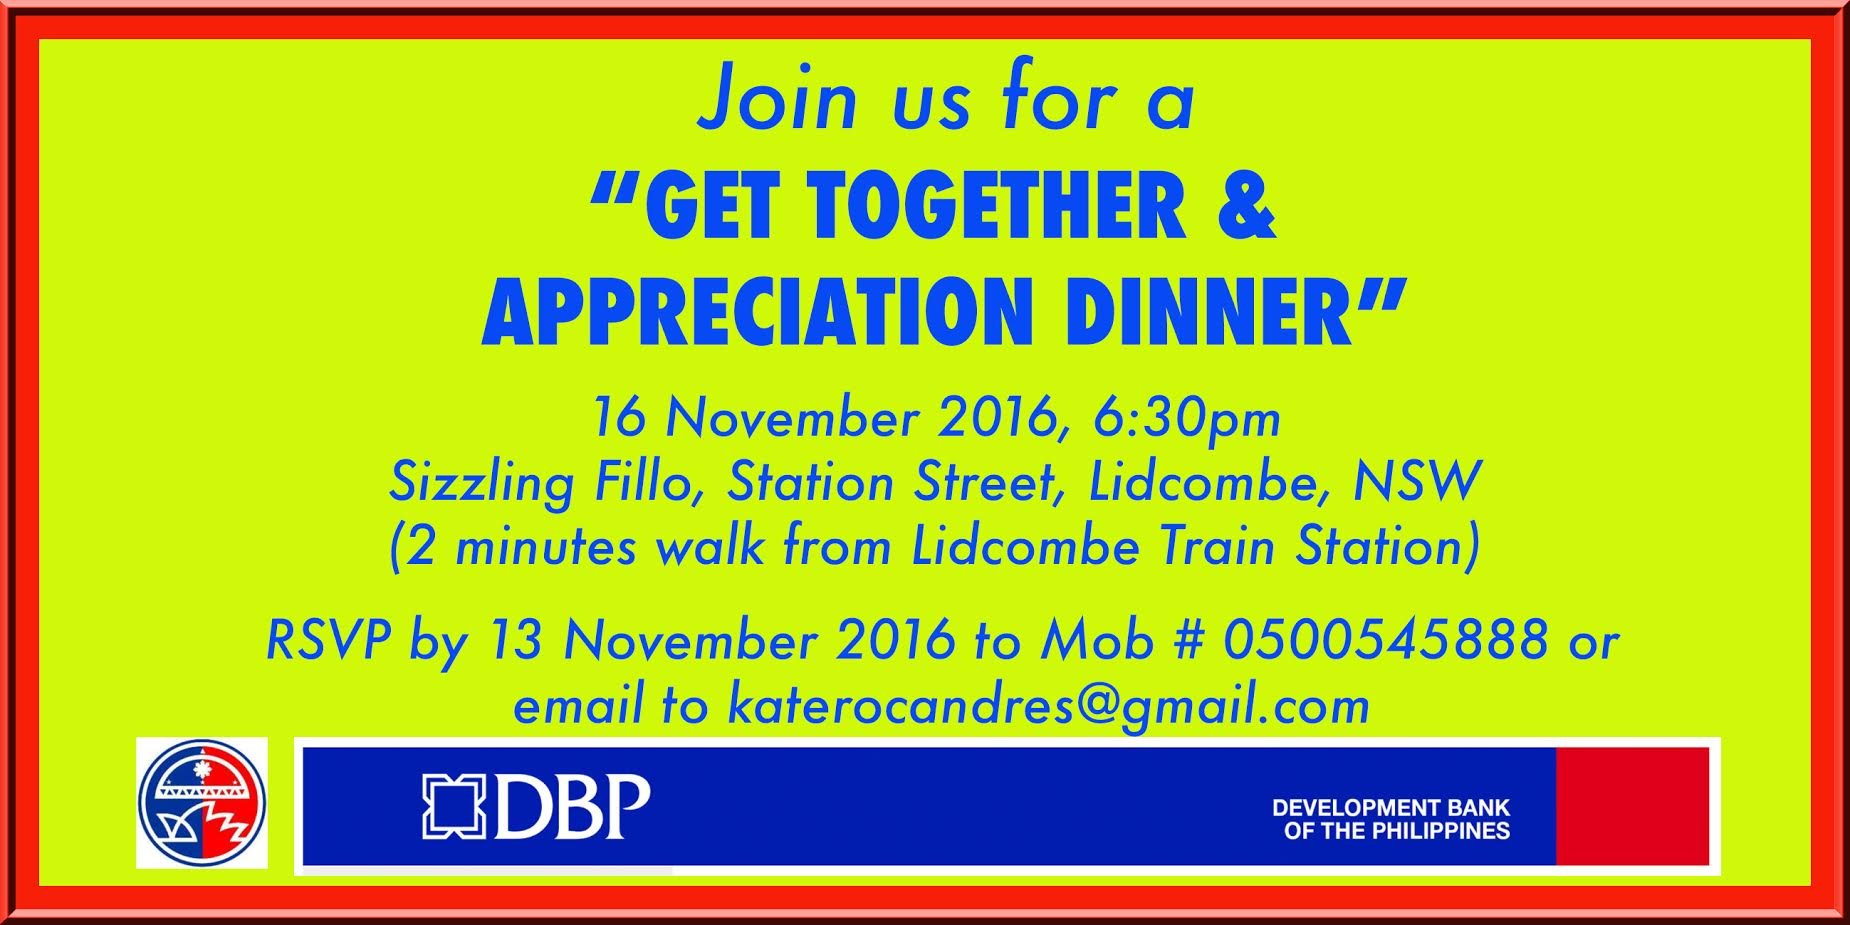 """The Philippine Community Council of New South Wales Inc (PCC NSW Inc) is organising the """"Get Together and Appreciation Dinner"""" on 16 November 2016 at Lidcombe, NSW, Australia."""